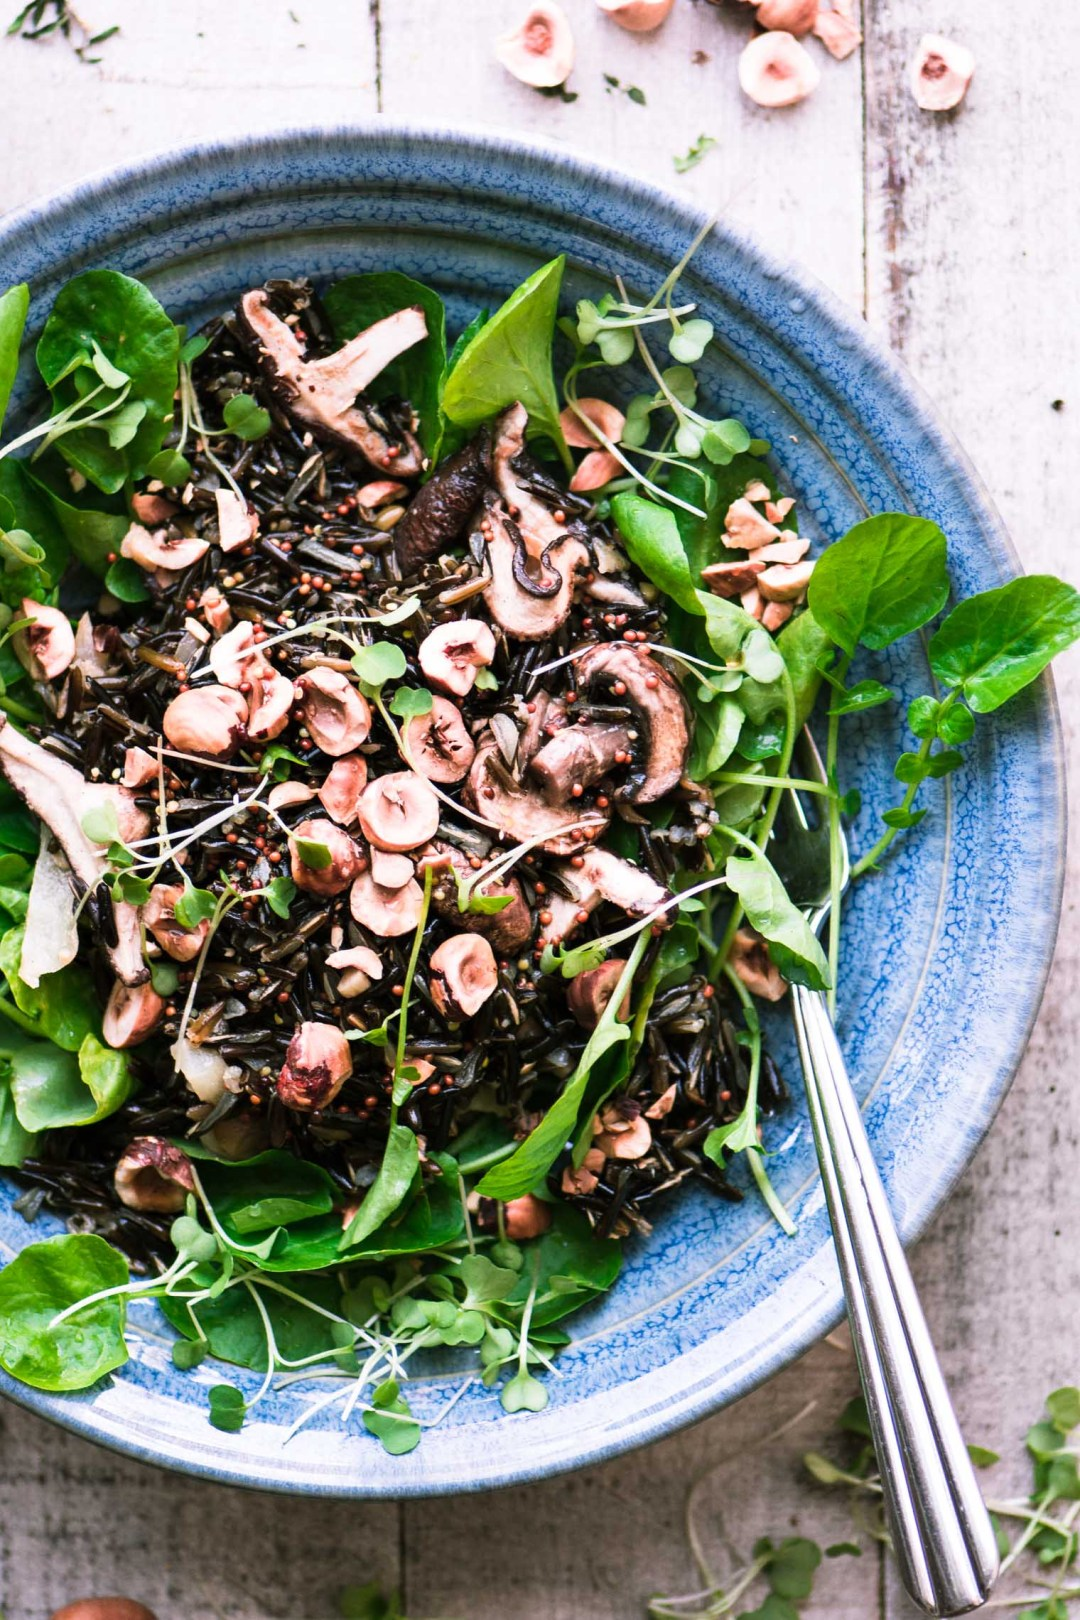 Wild rice salad with watercress in a blue bowl